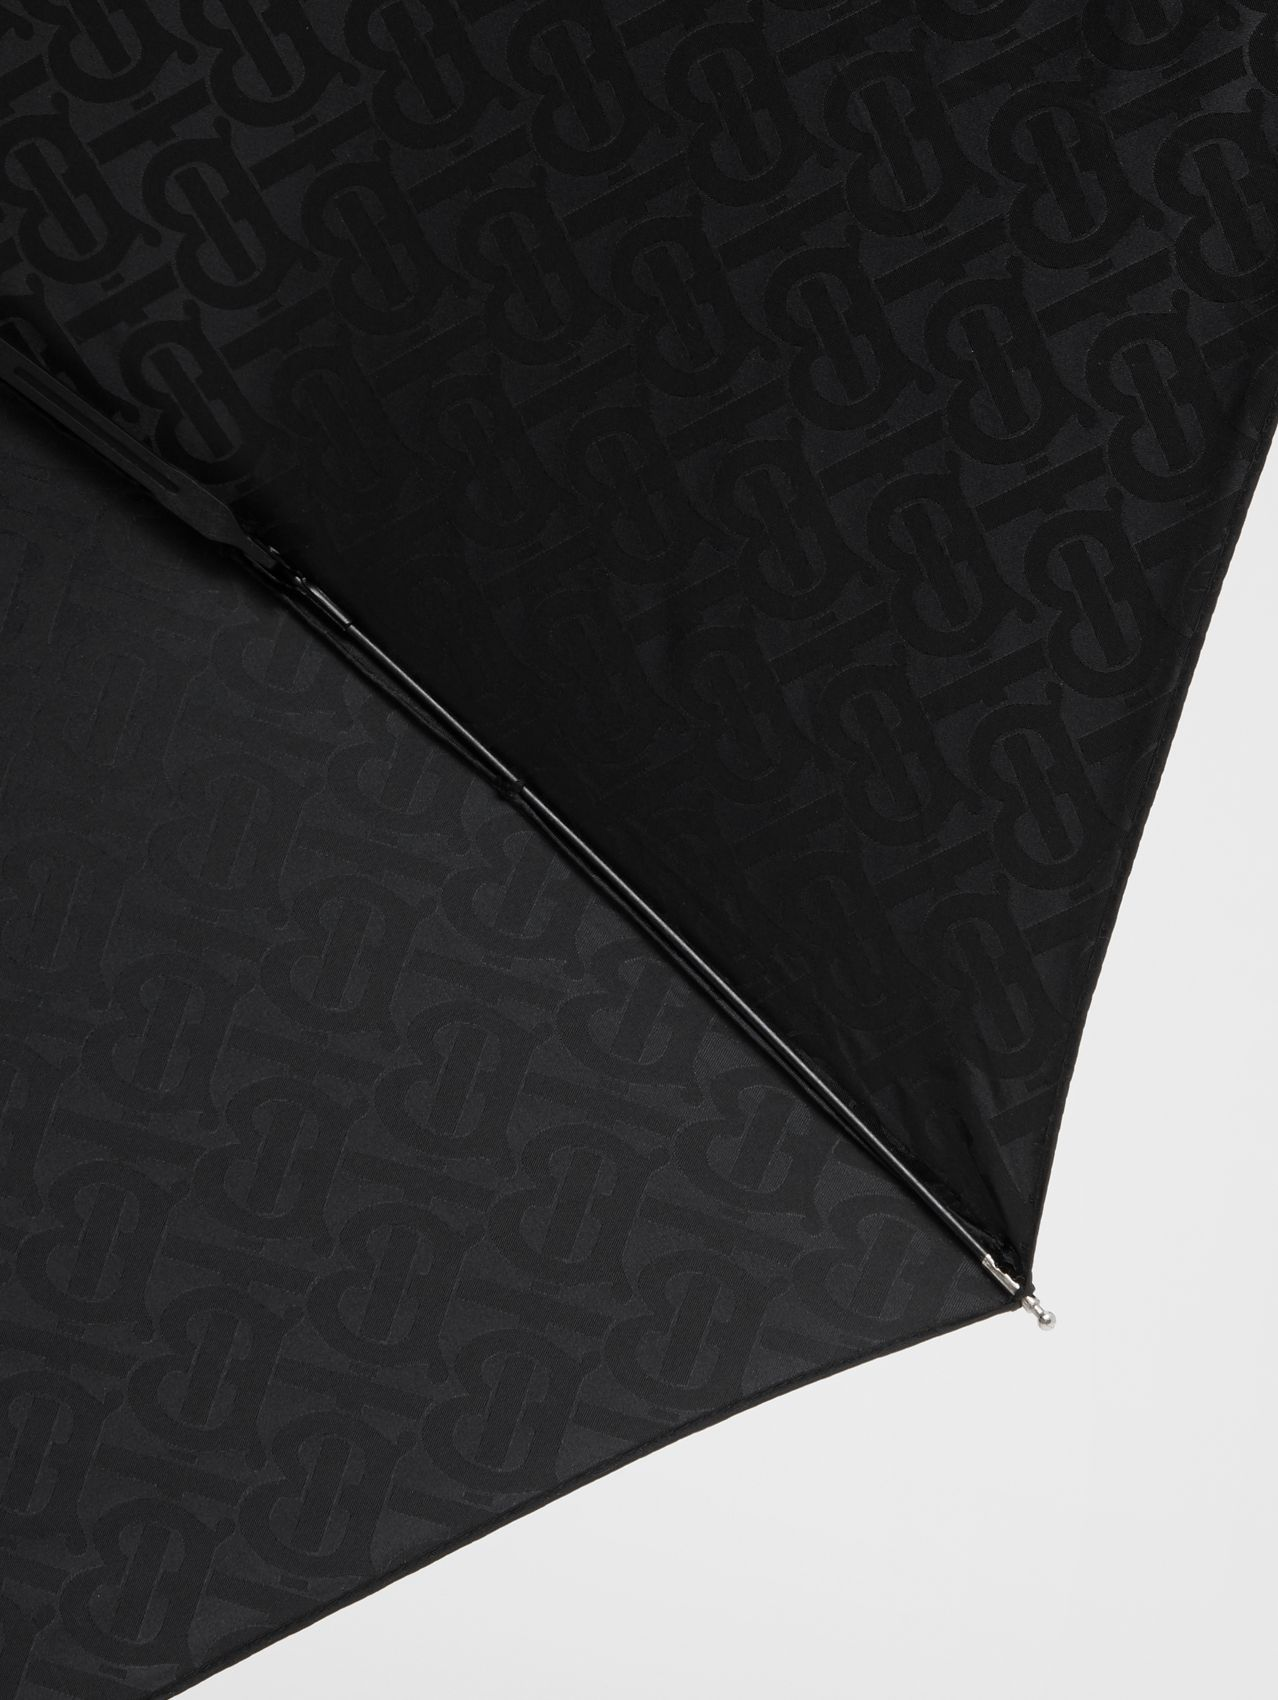 Monogram Print Folding Umbrella (Black)